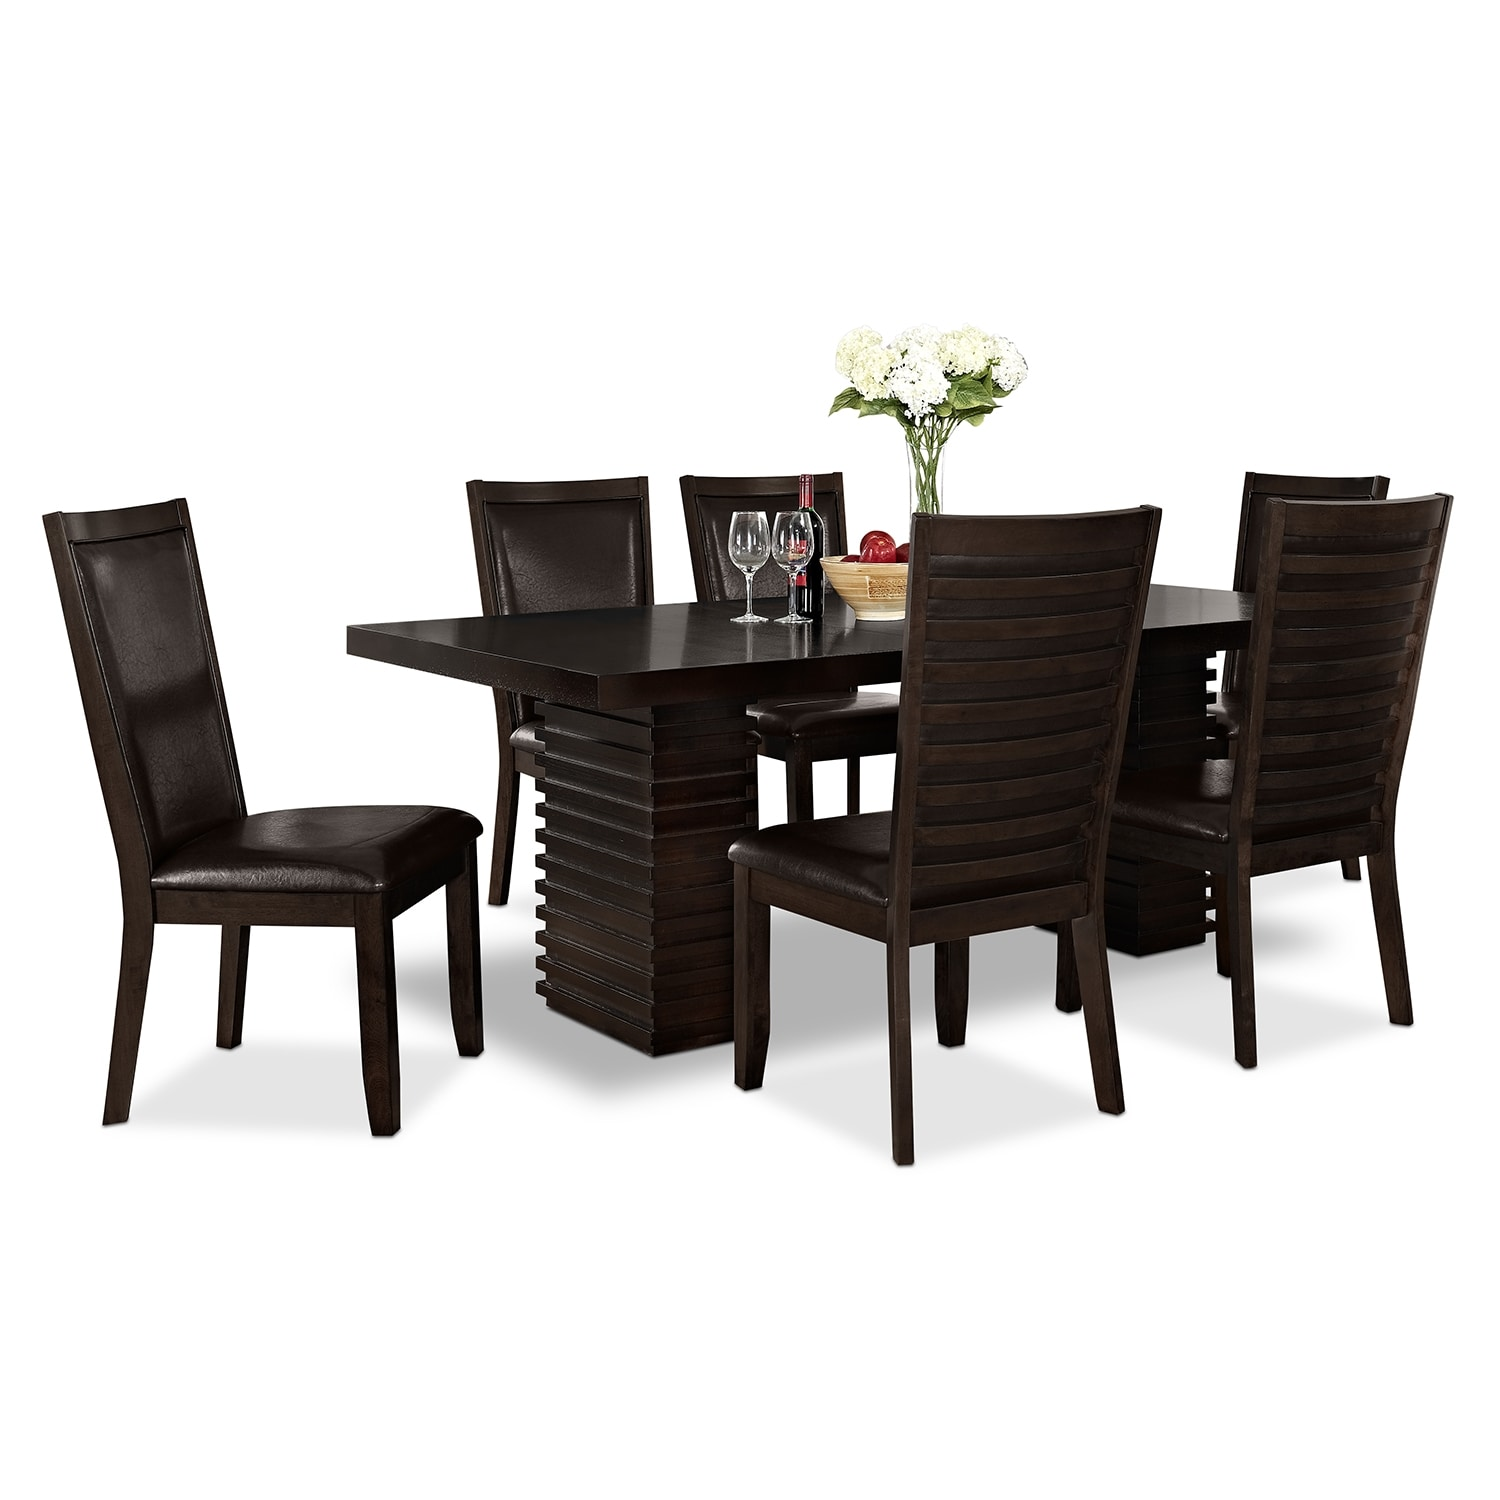 shop for 7 piece dining rooms 4 person kitchen table Paragon Table and 6 Chairs Merlot and Brown